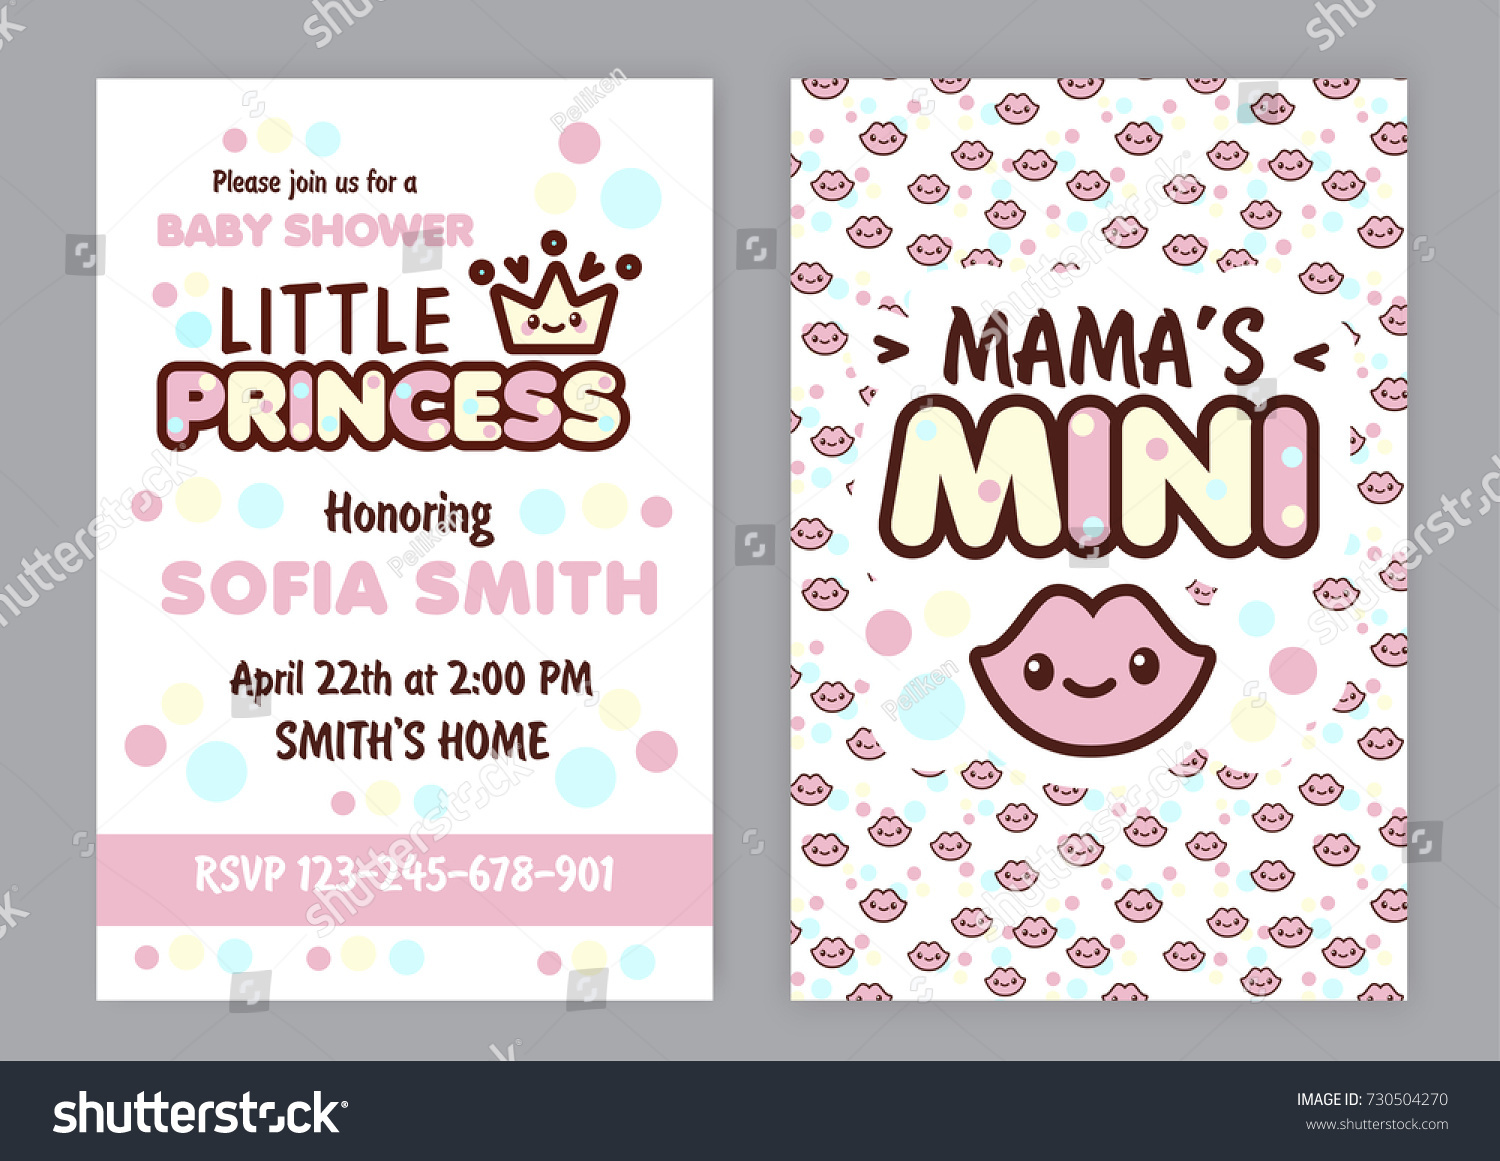 Baby Shower Party Invitation Kawaii Style Vector 730504270 – Baby Shower Party Invitations